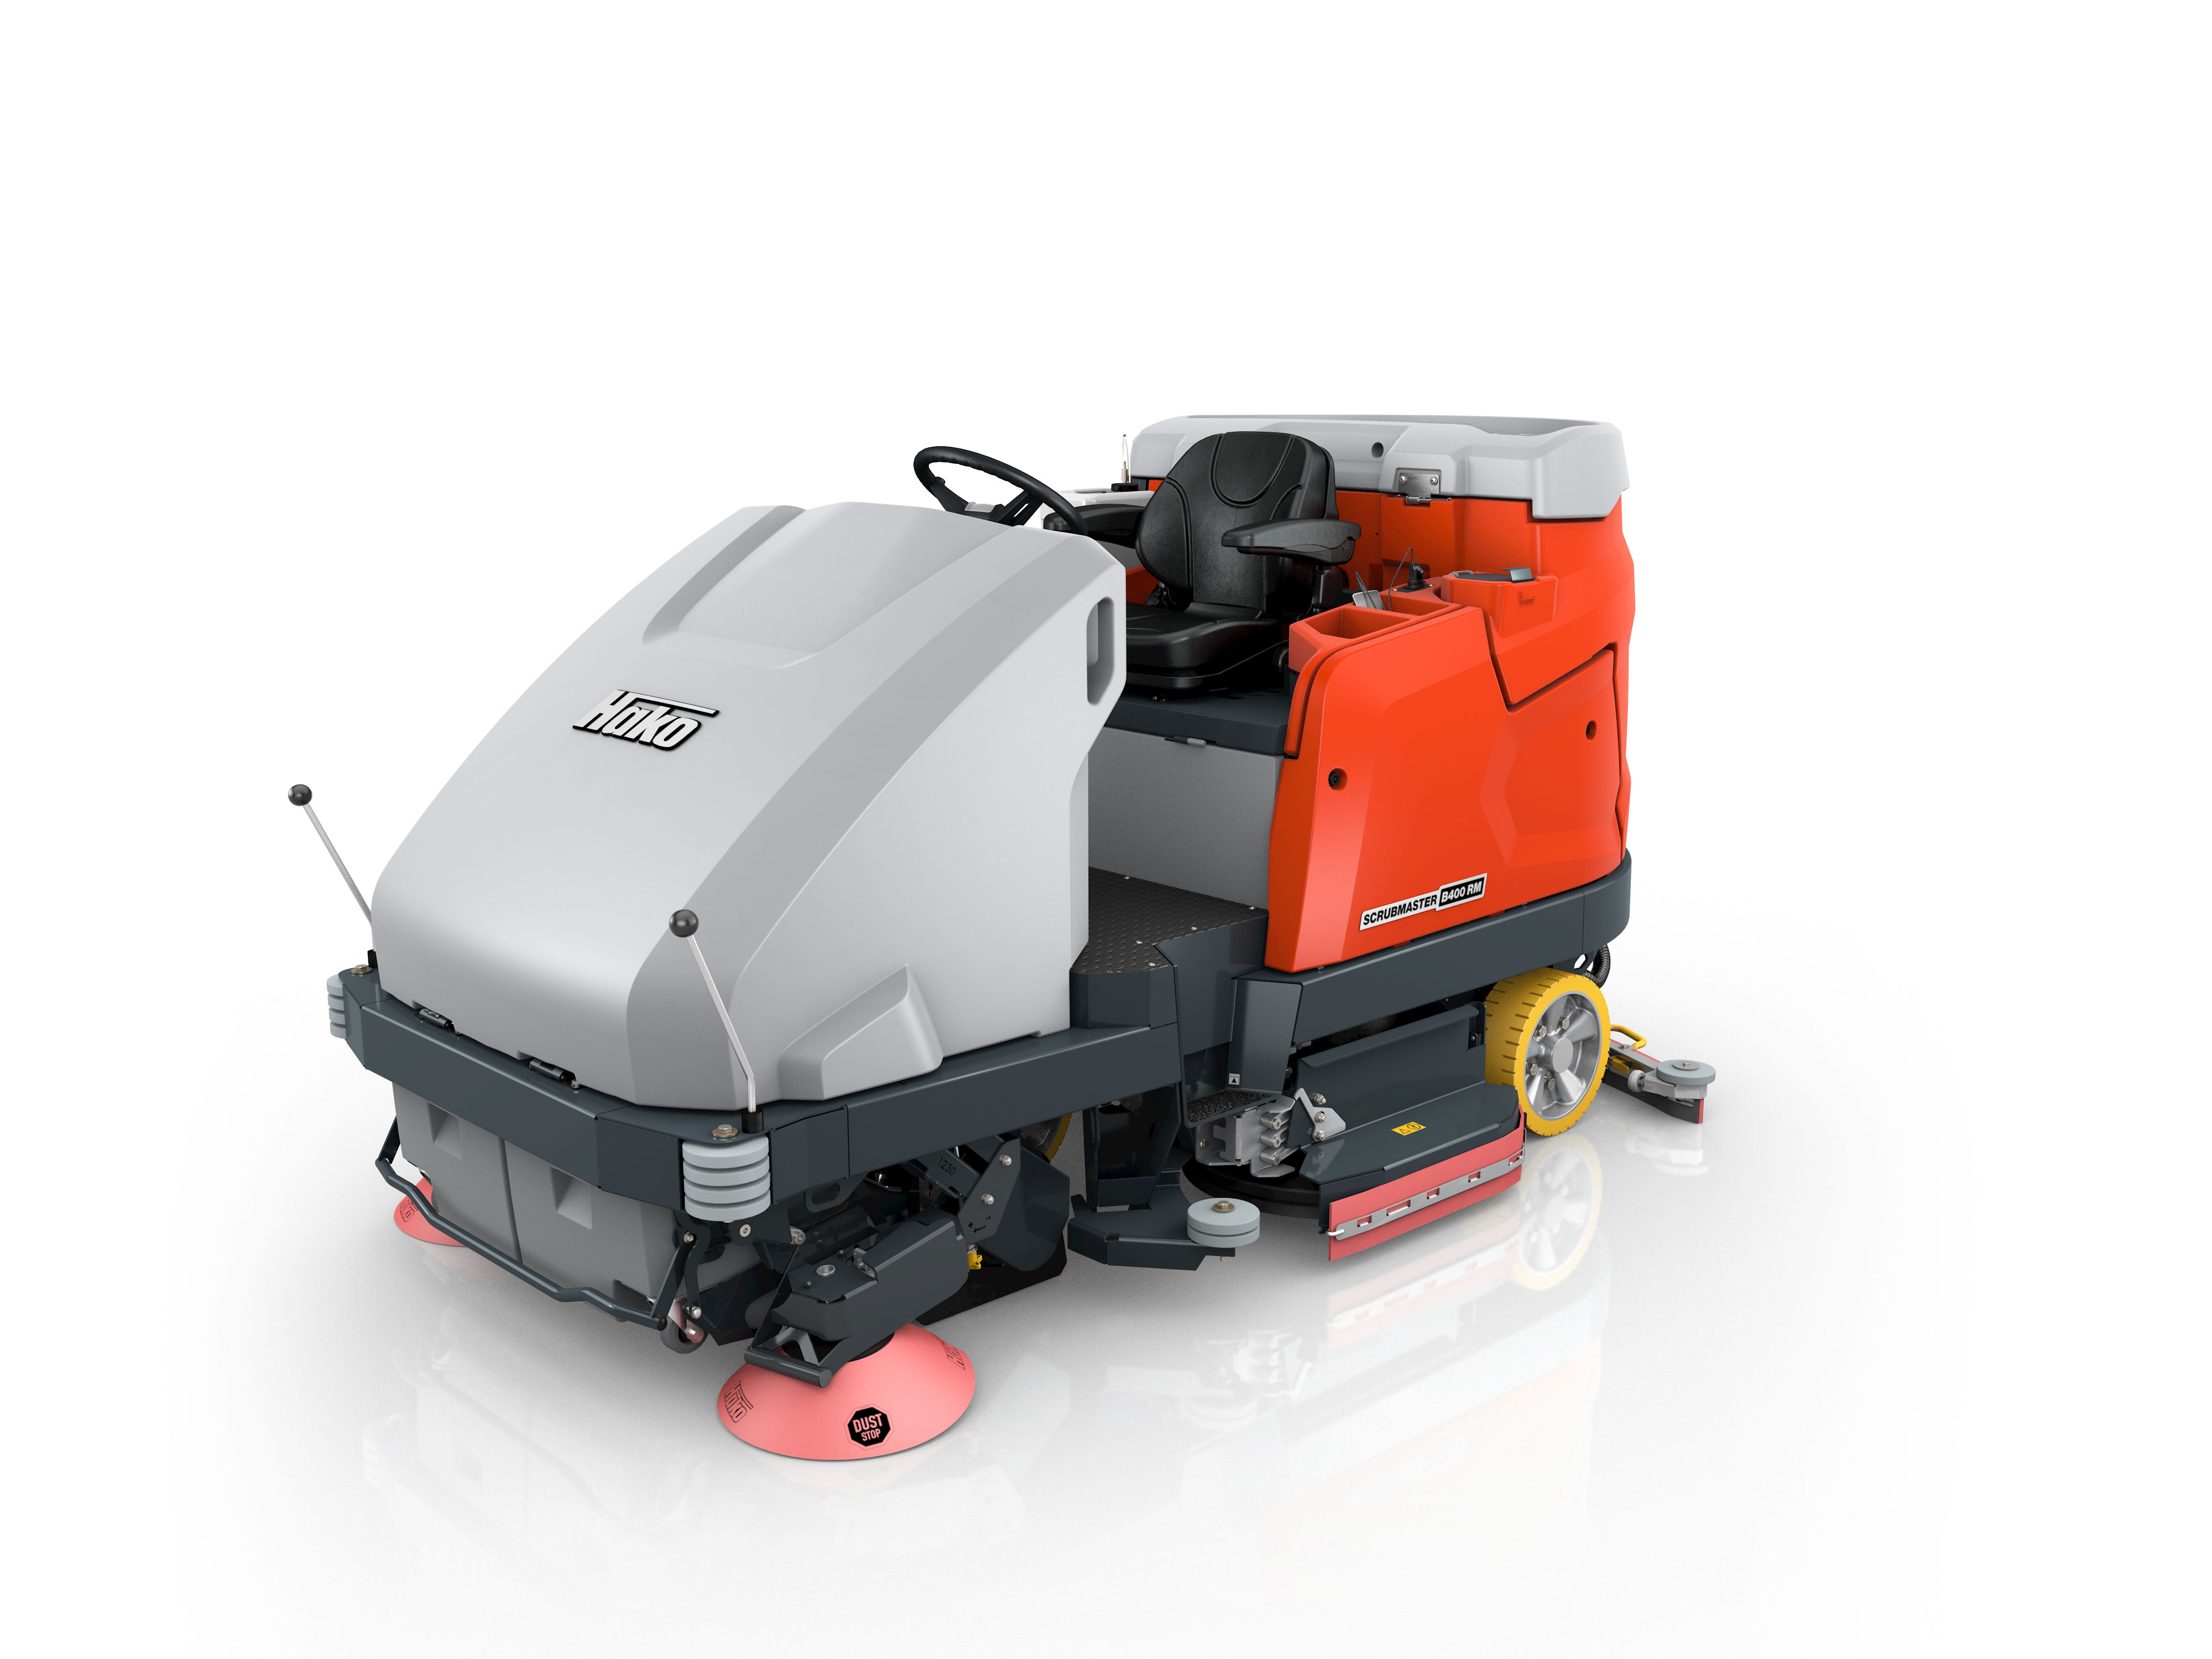 Scrubmaster B400 RM Vacuum sweeper and scrubber-drier combi machine for manual emptying